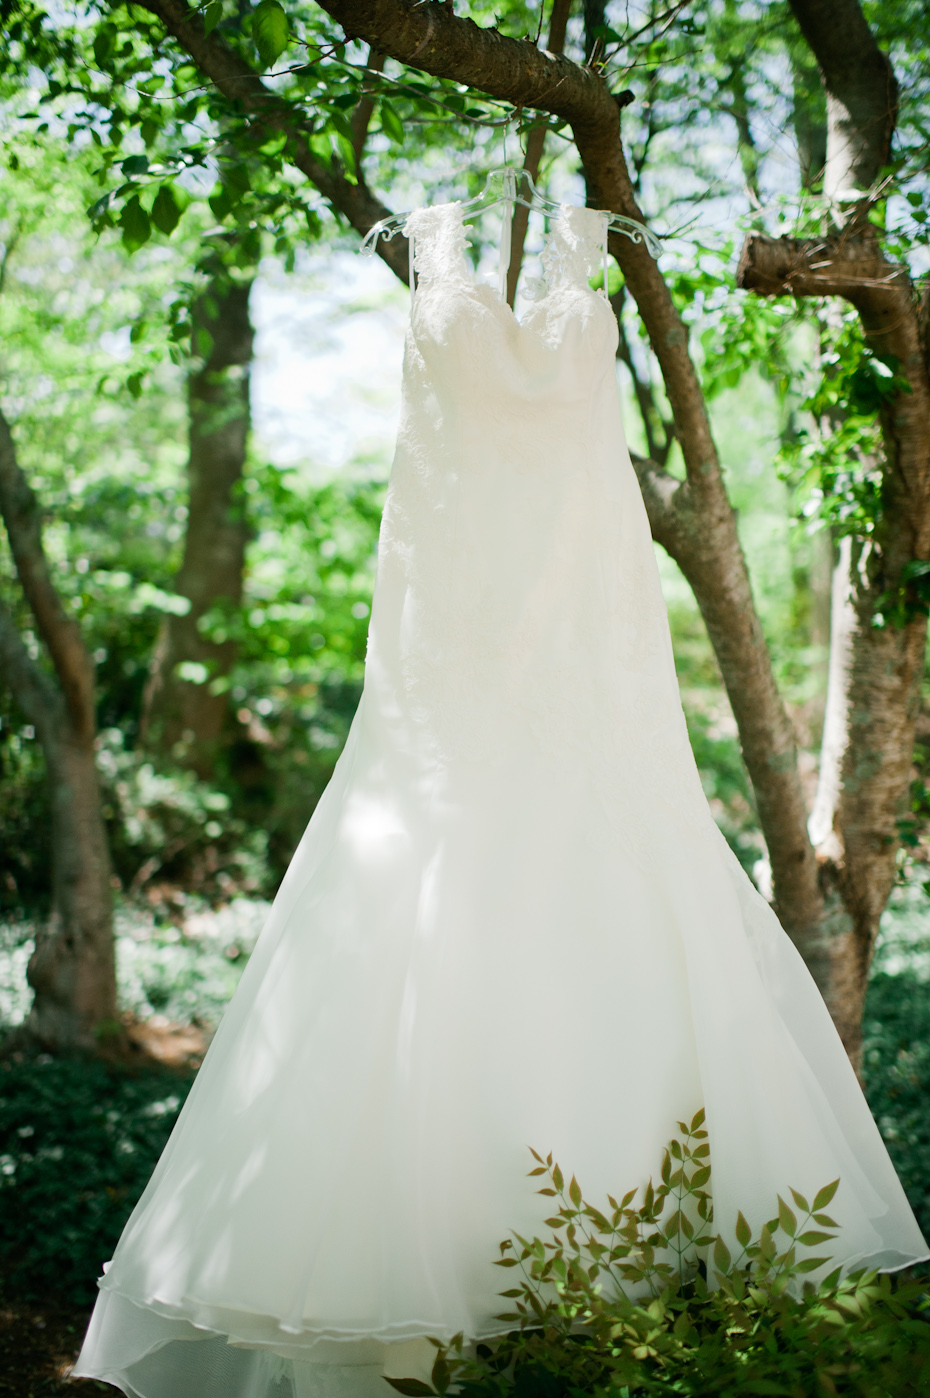 Marisa wedding dress from Bridals by Lori